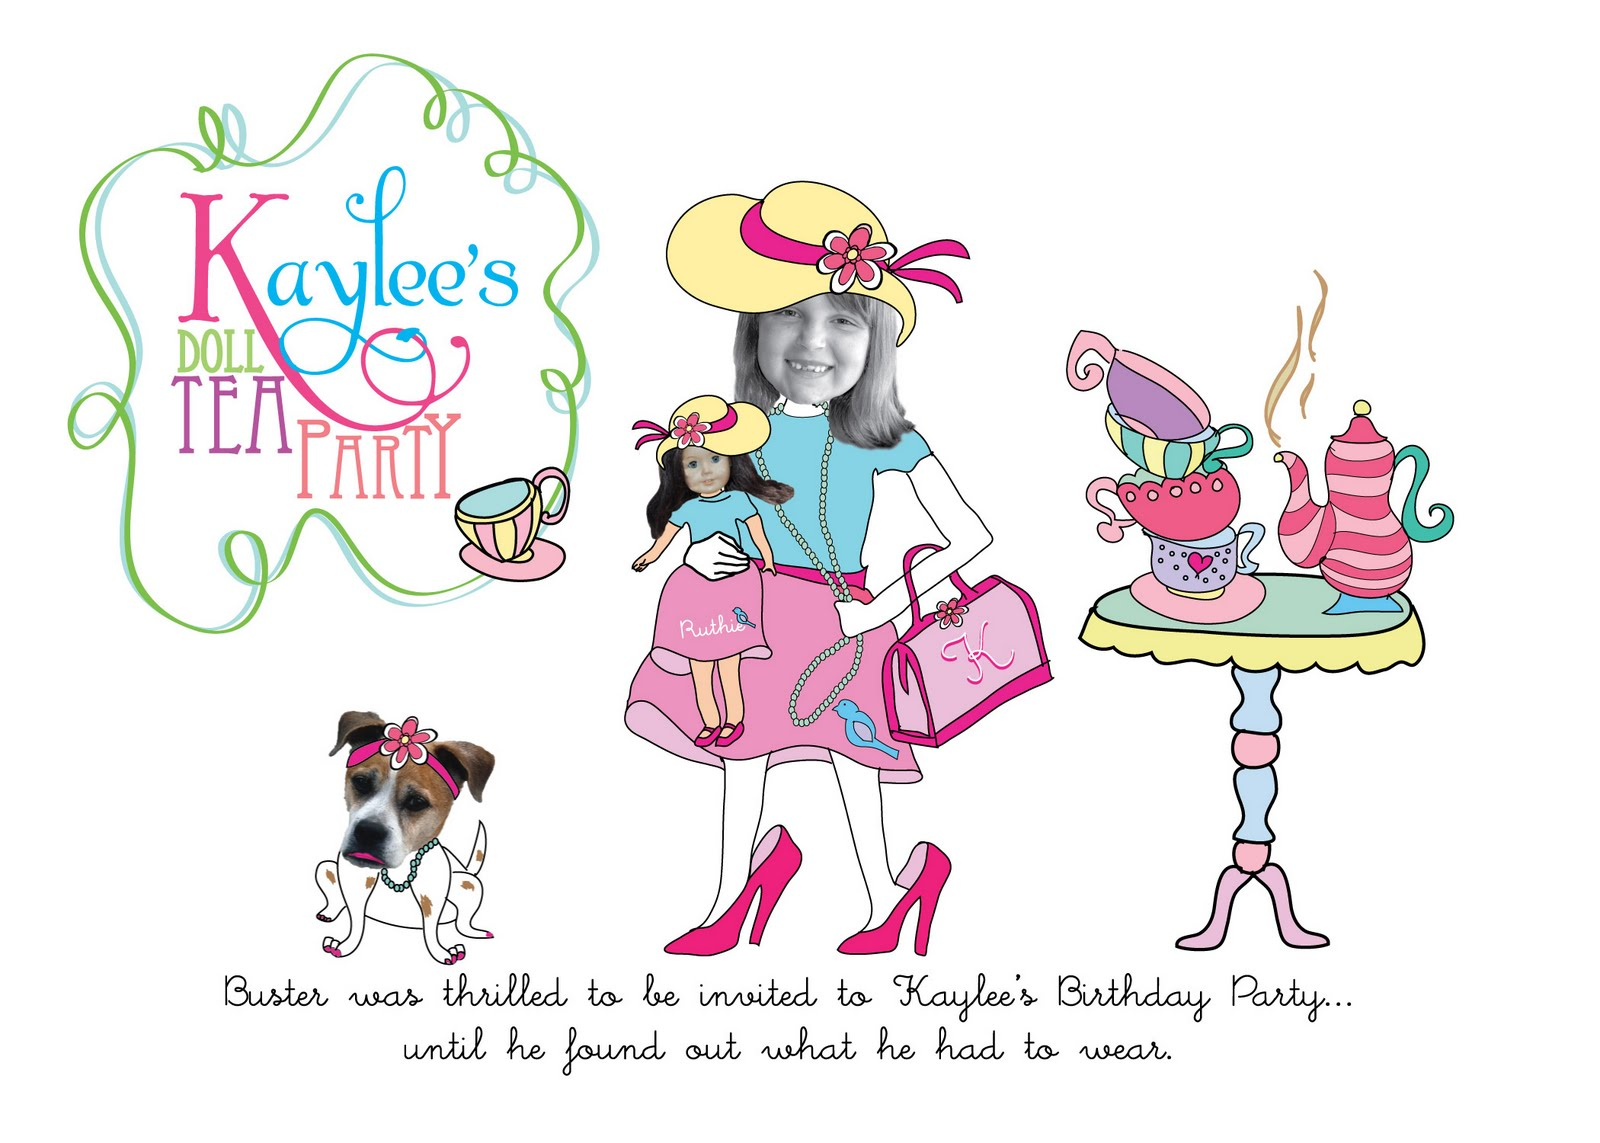 ewe hooo!: A Delightful Doll Tea Party!